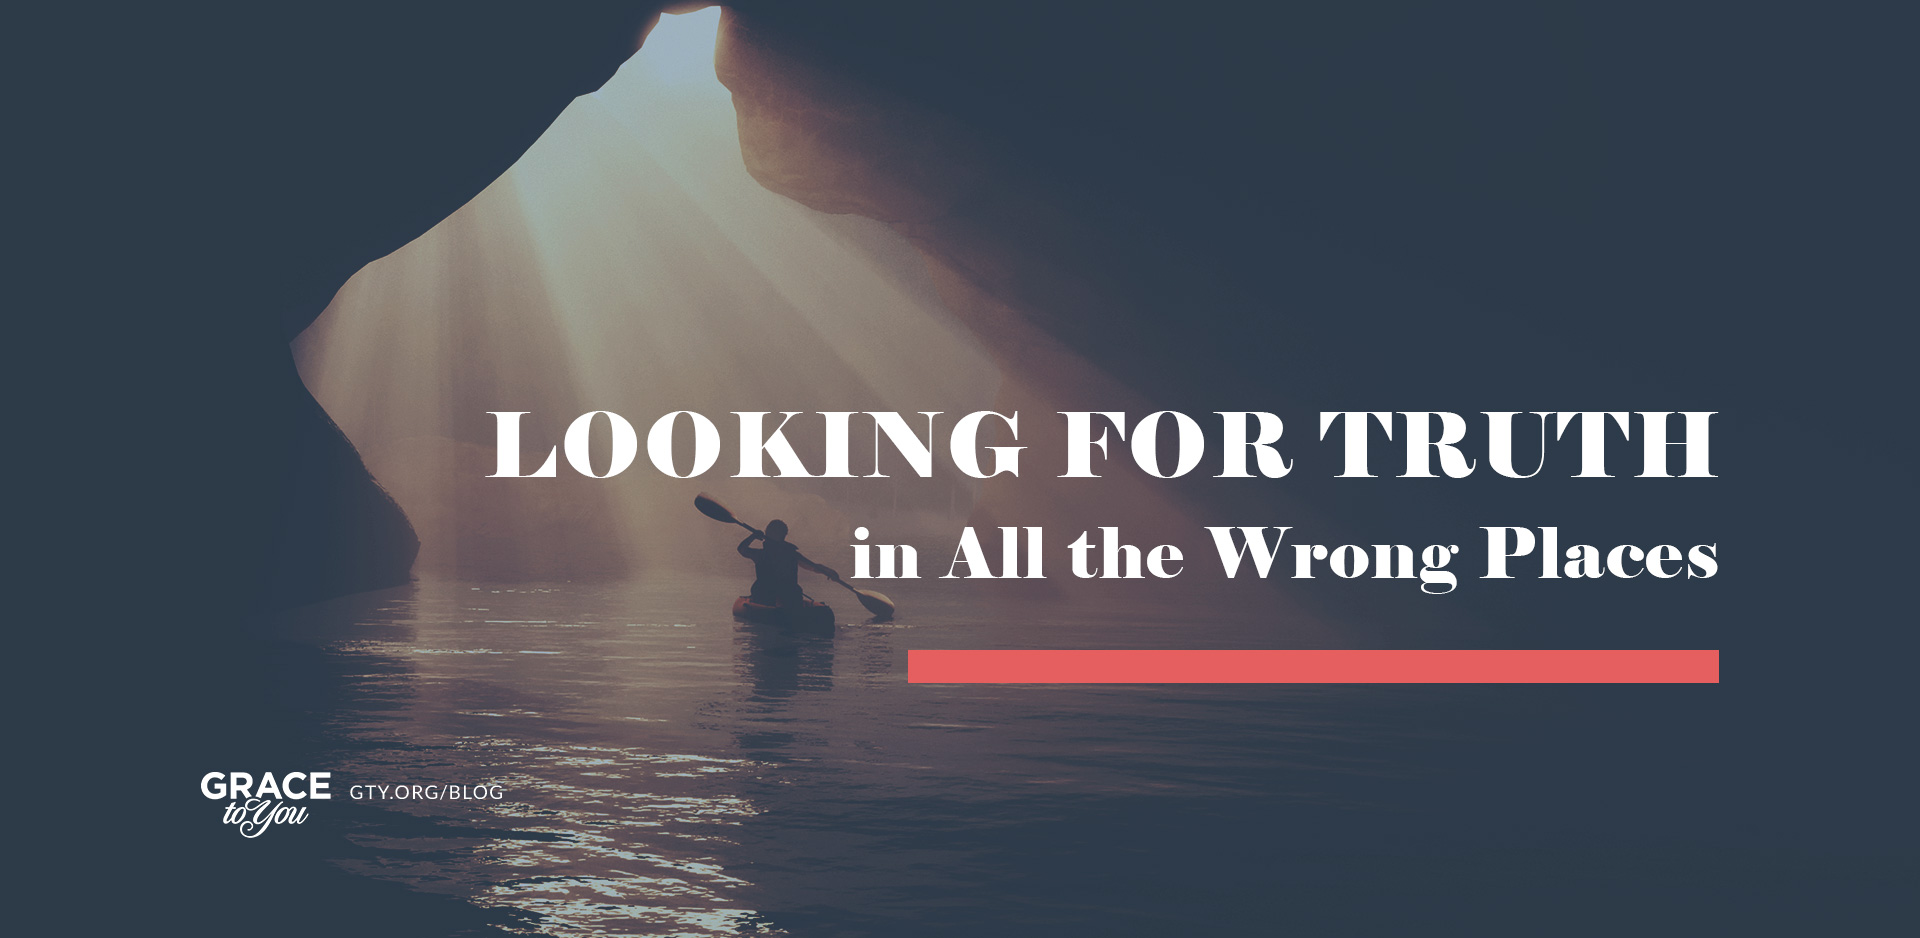 Looking For Truth in All the Wrong Places